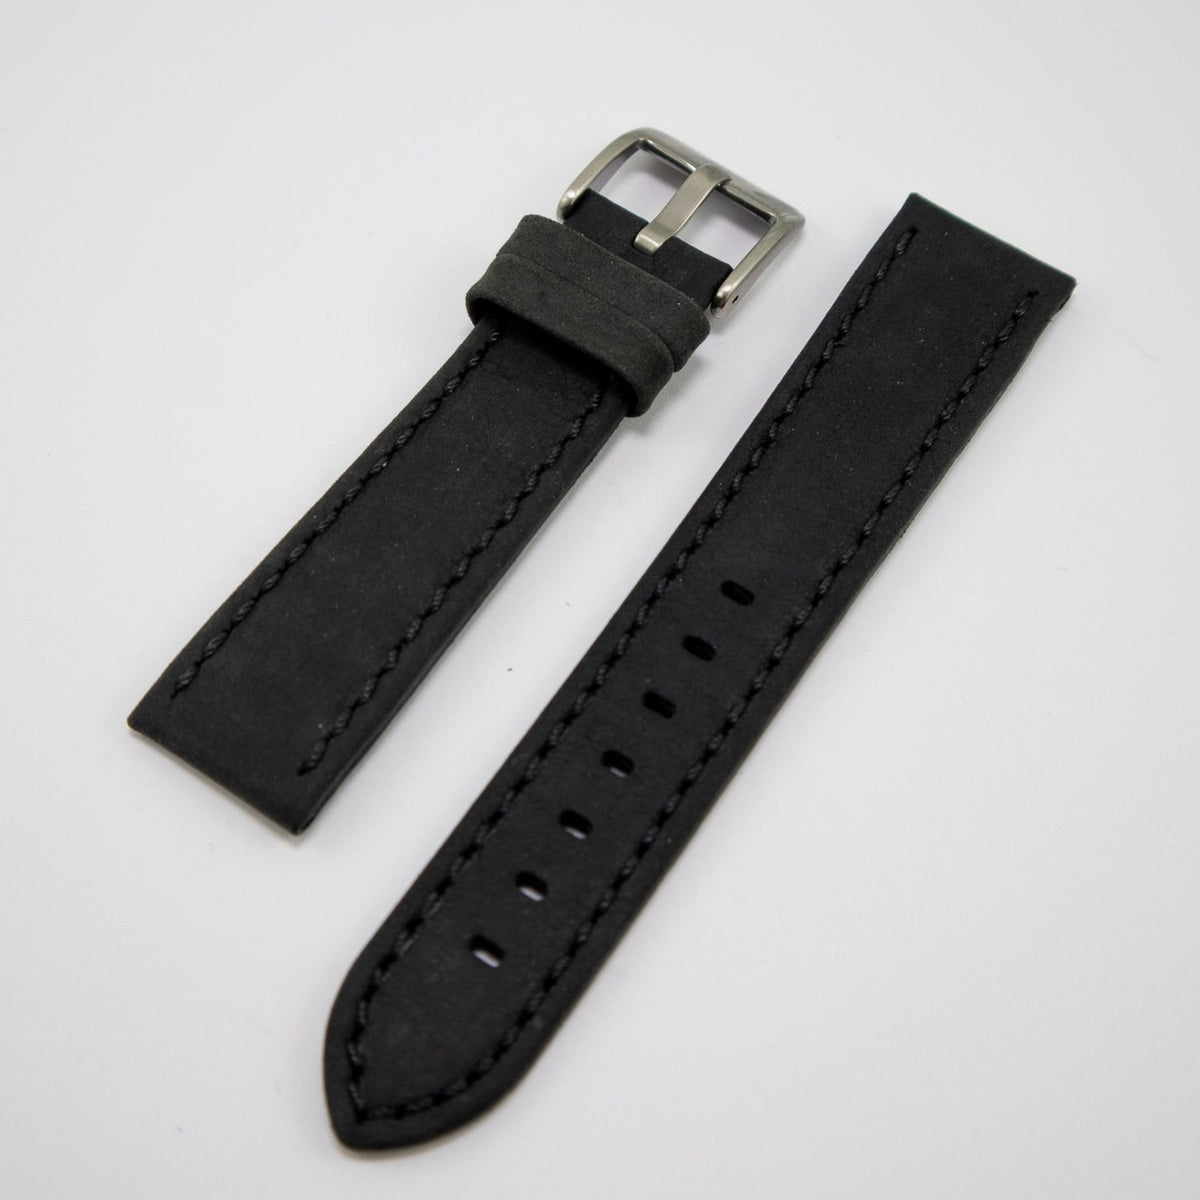 Condor Watchstrap - Padded Stitched Leather - Black